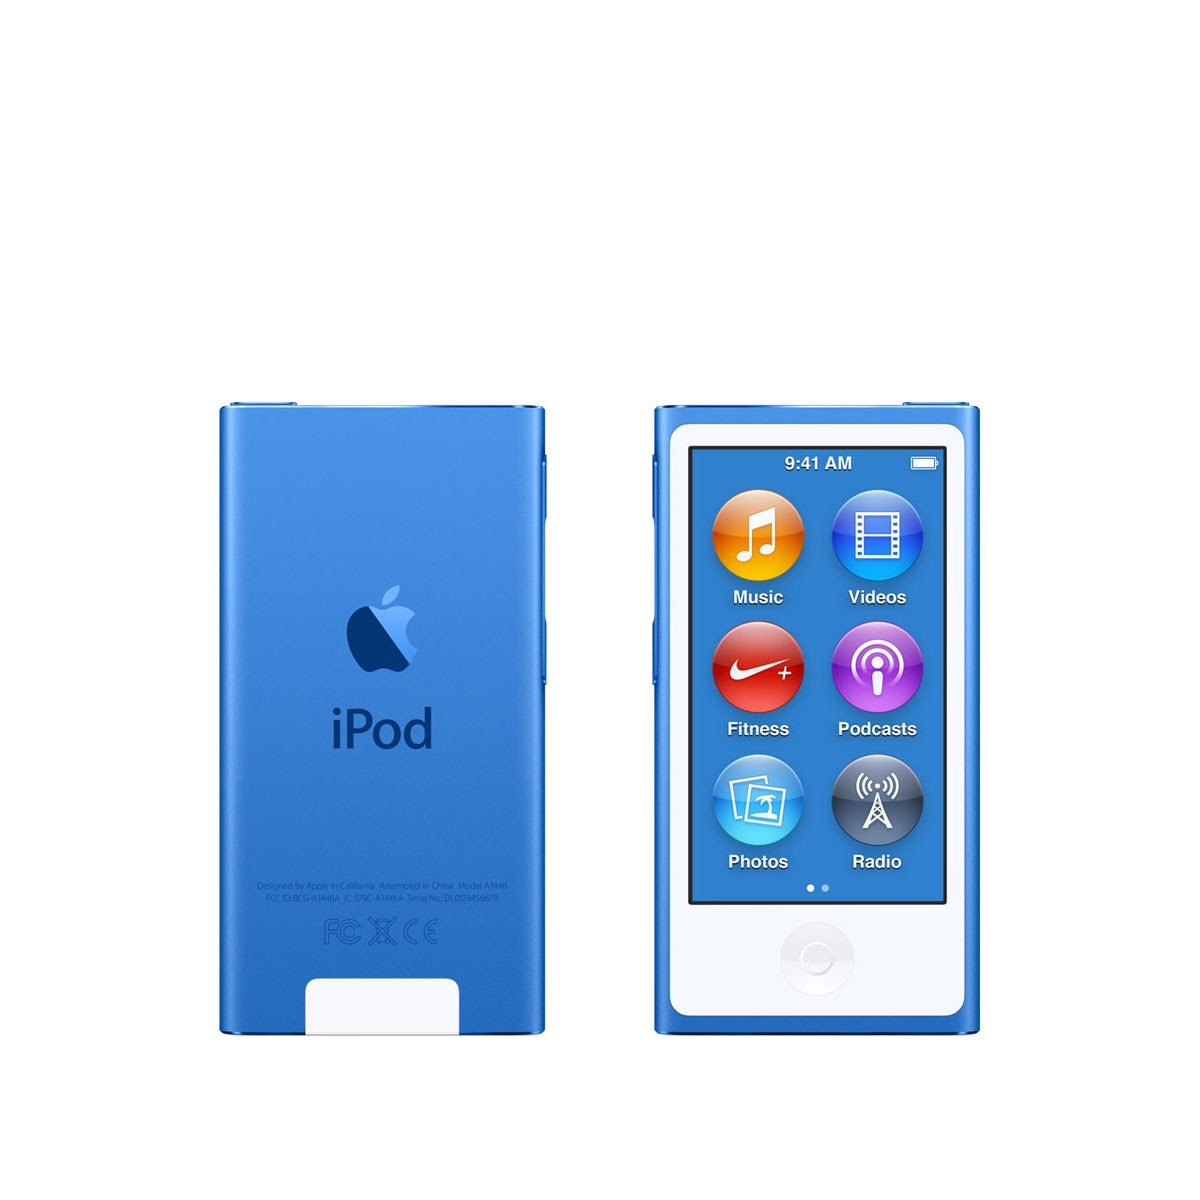 iPod nano 16GB - Blue